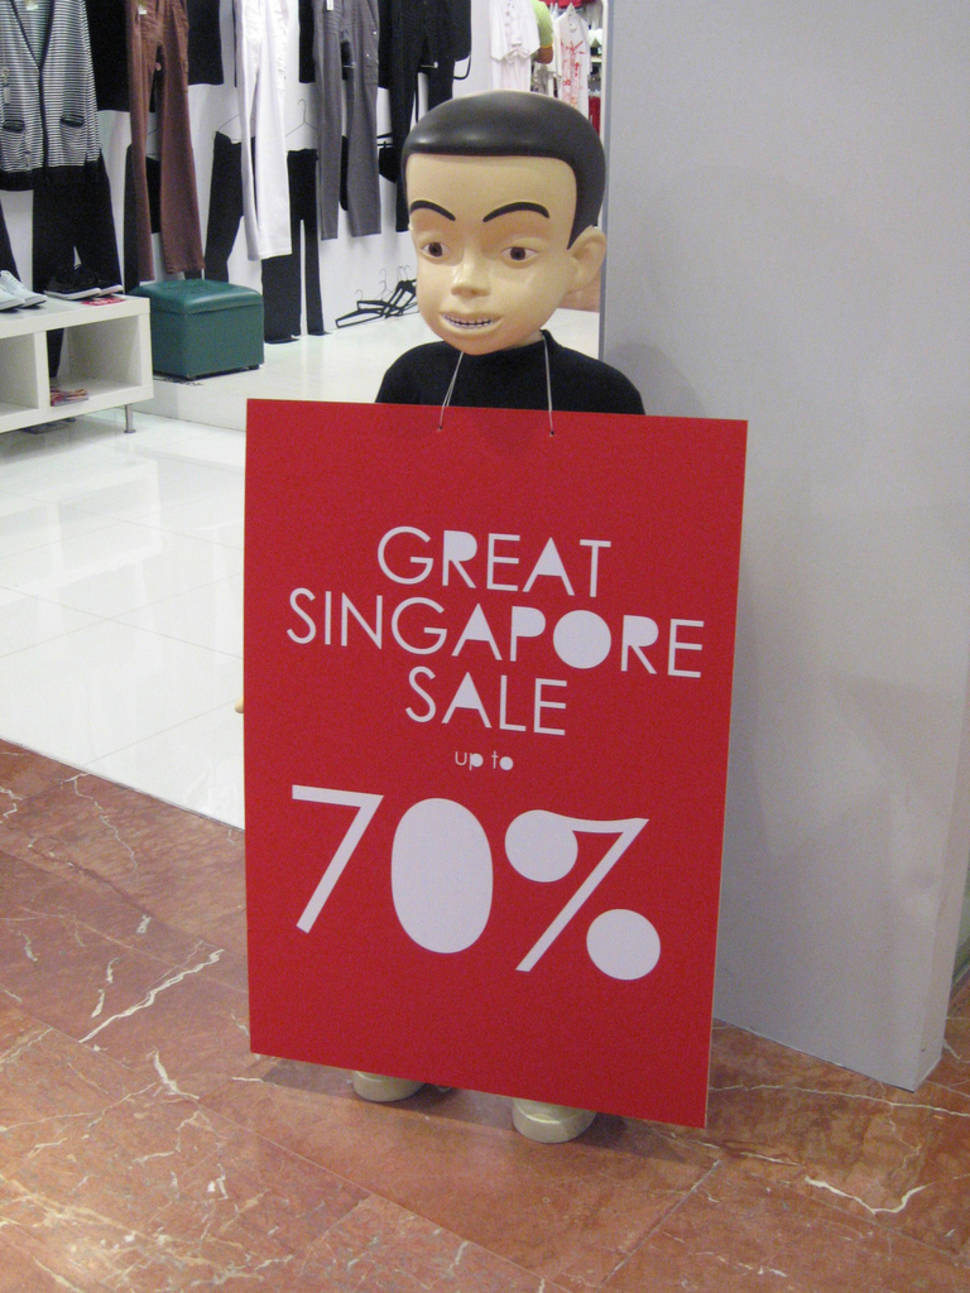 The Great Singapore Sale in Singapore - Best Time